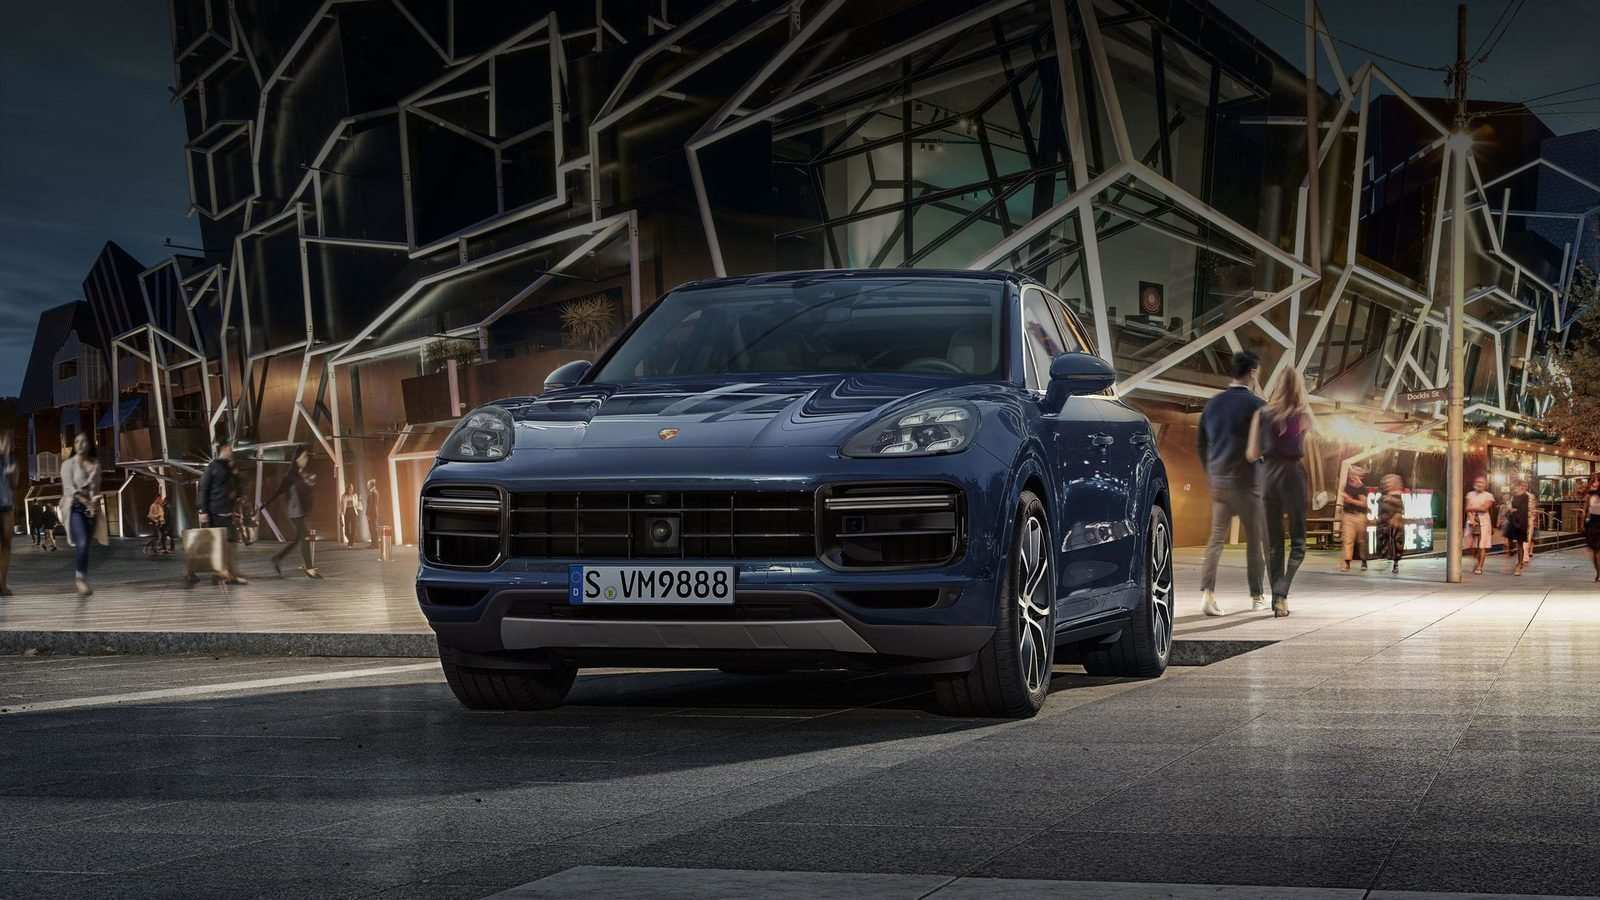 97 Gallery of 2019 Porsche Cayenne Turbo Review Configurations by 2019 Porsche Cayenne Turbo Review